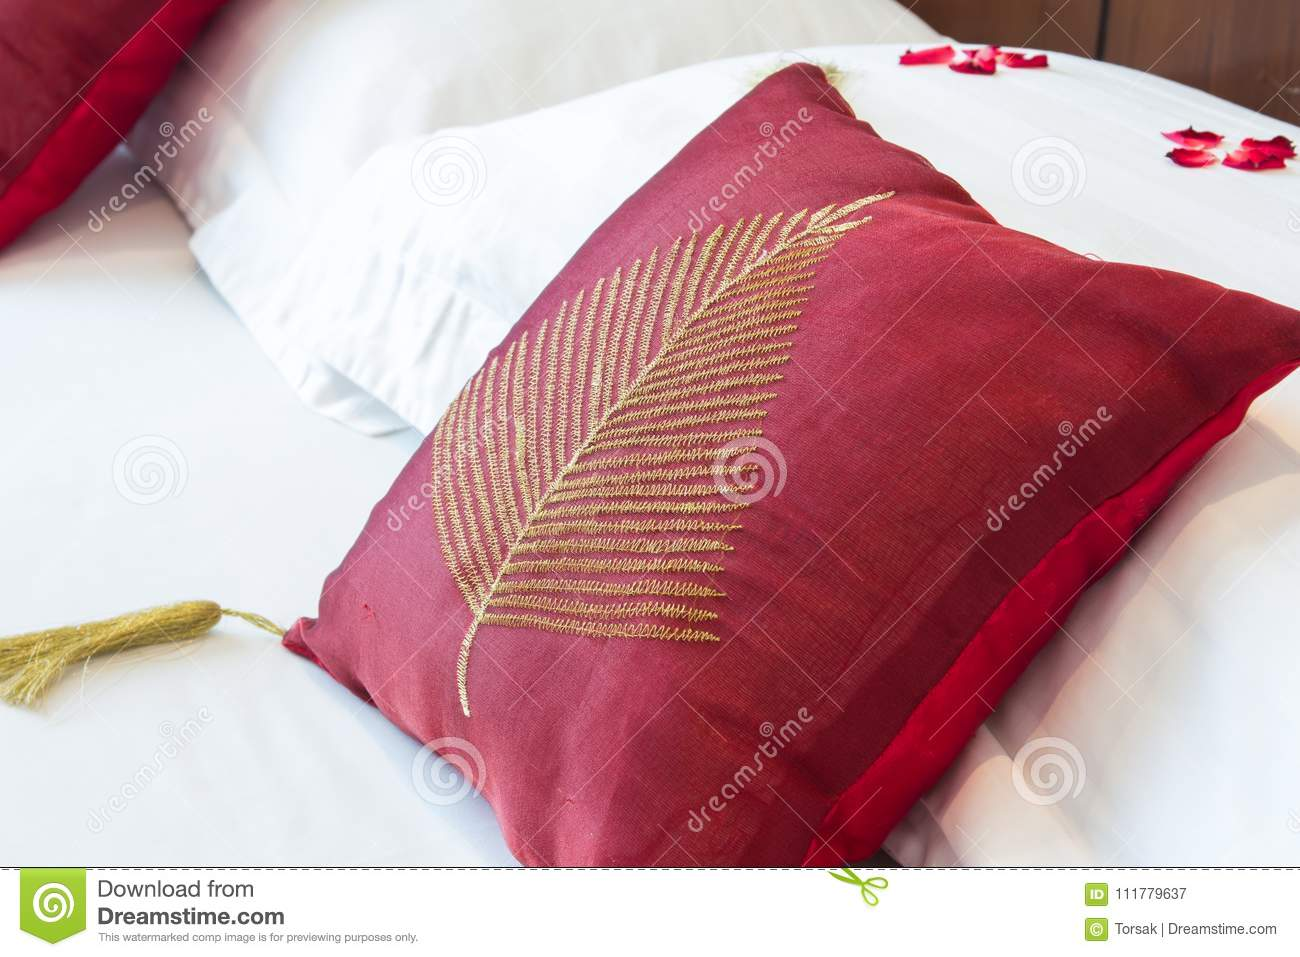 Red pillows on a bed